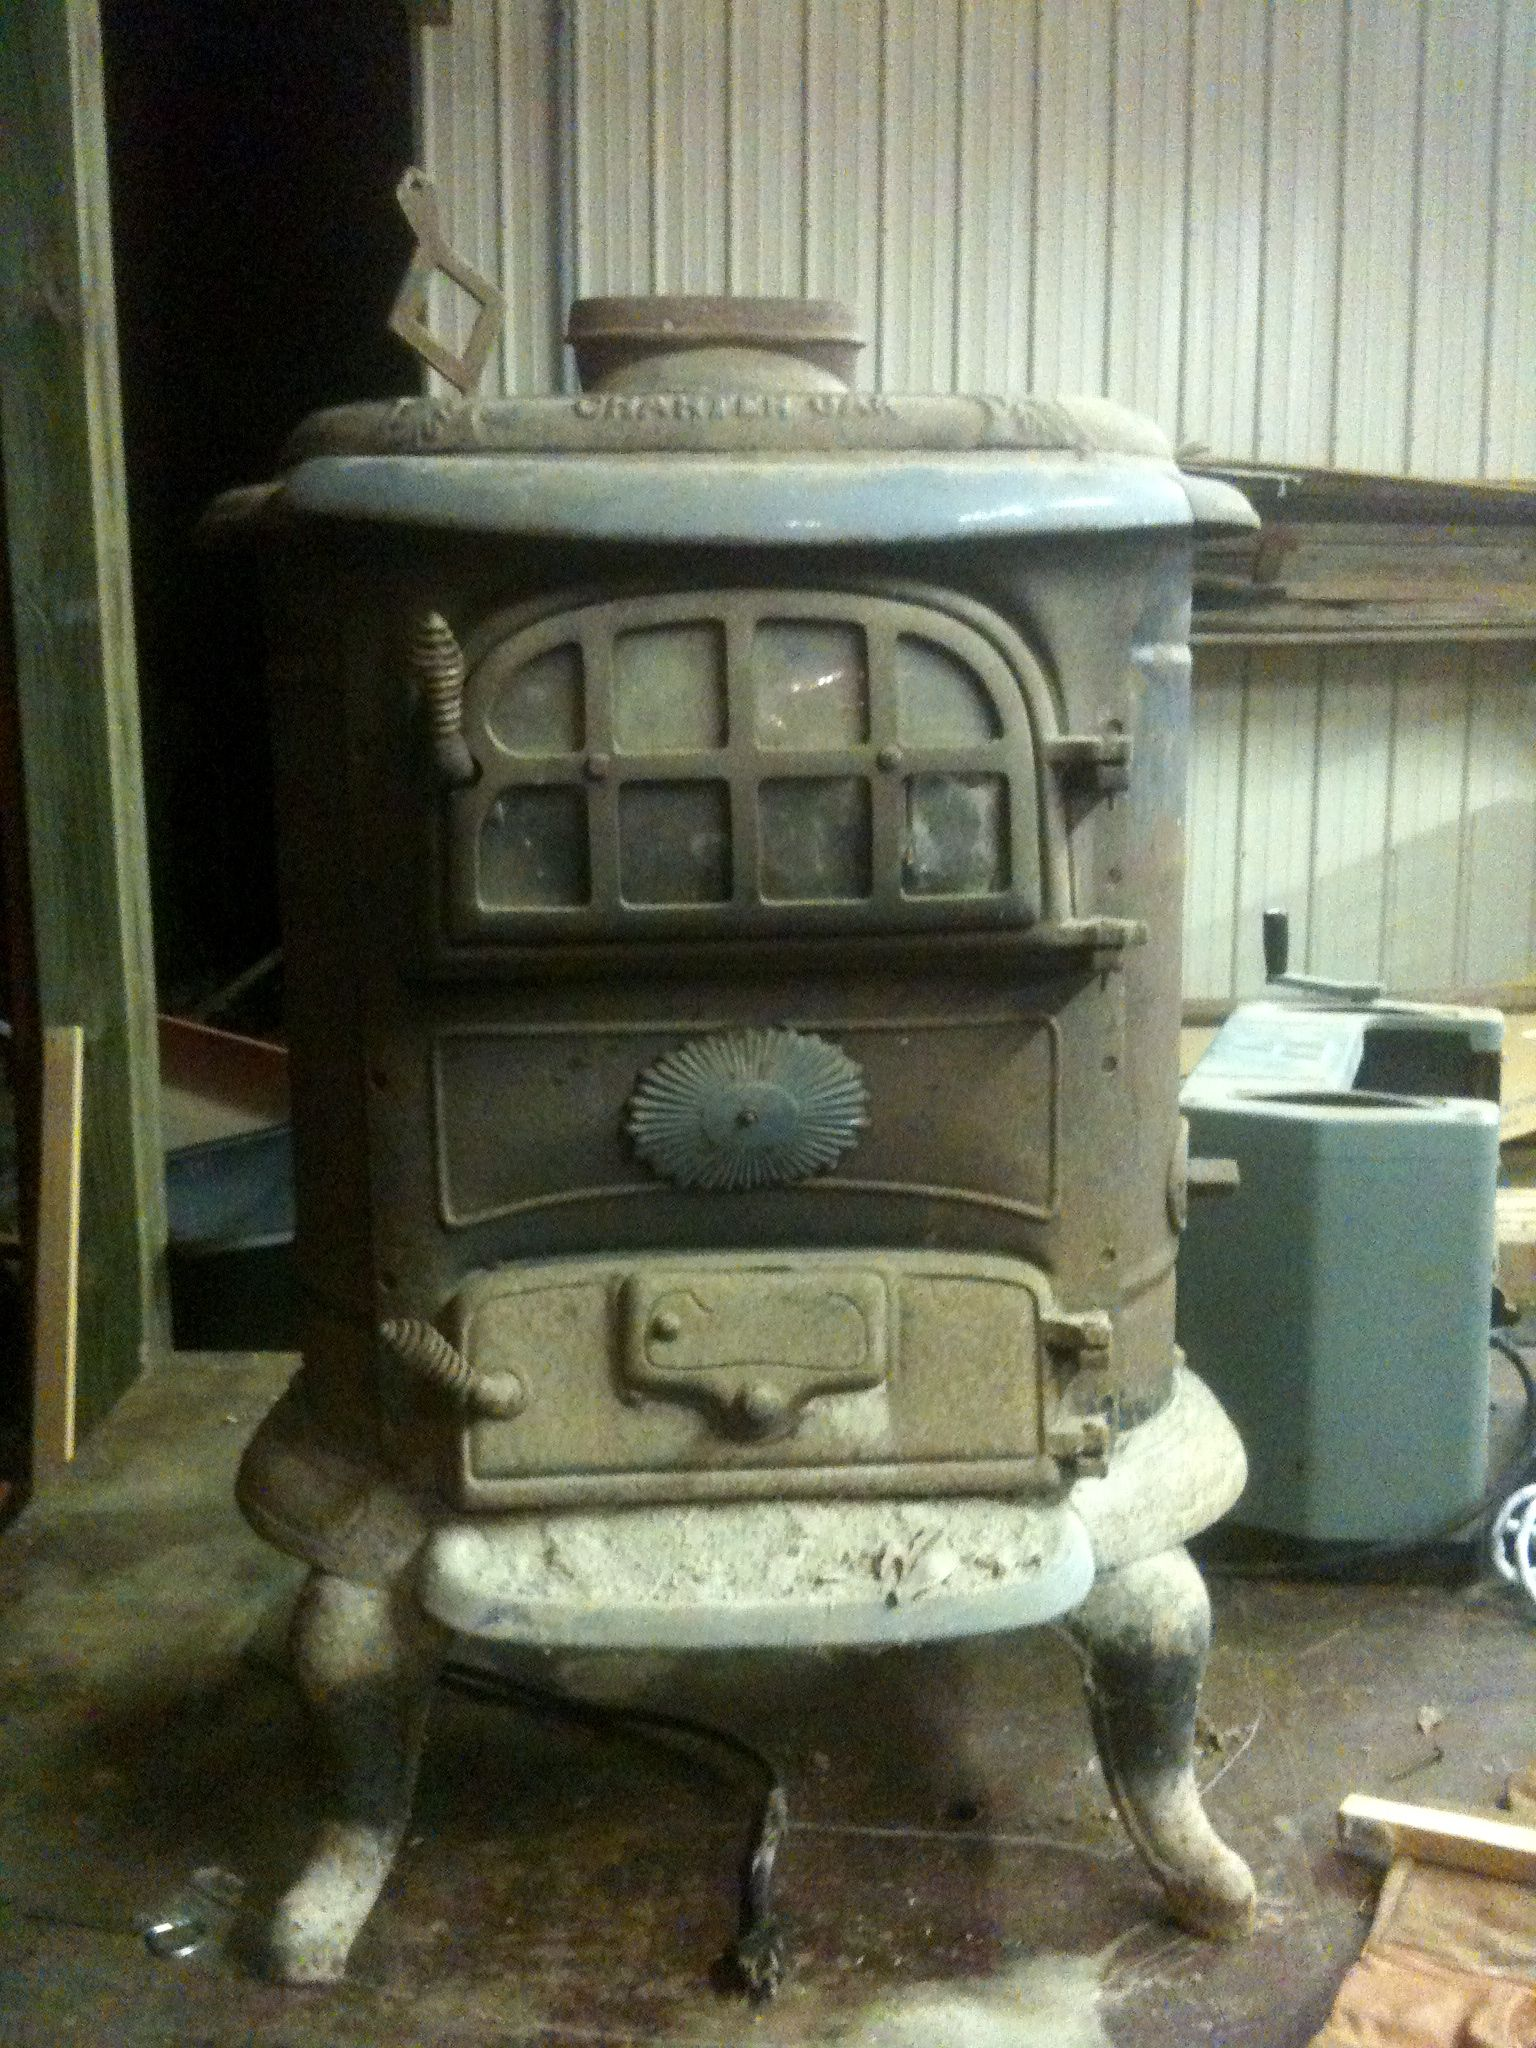 Our New Wood Burning Stove Charter Oak Stove, Model #614,